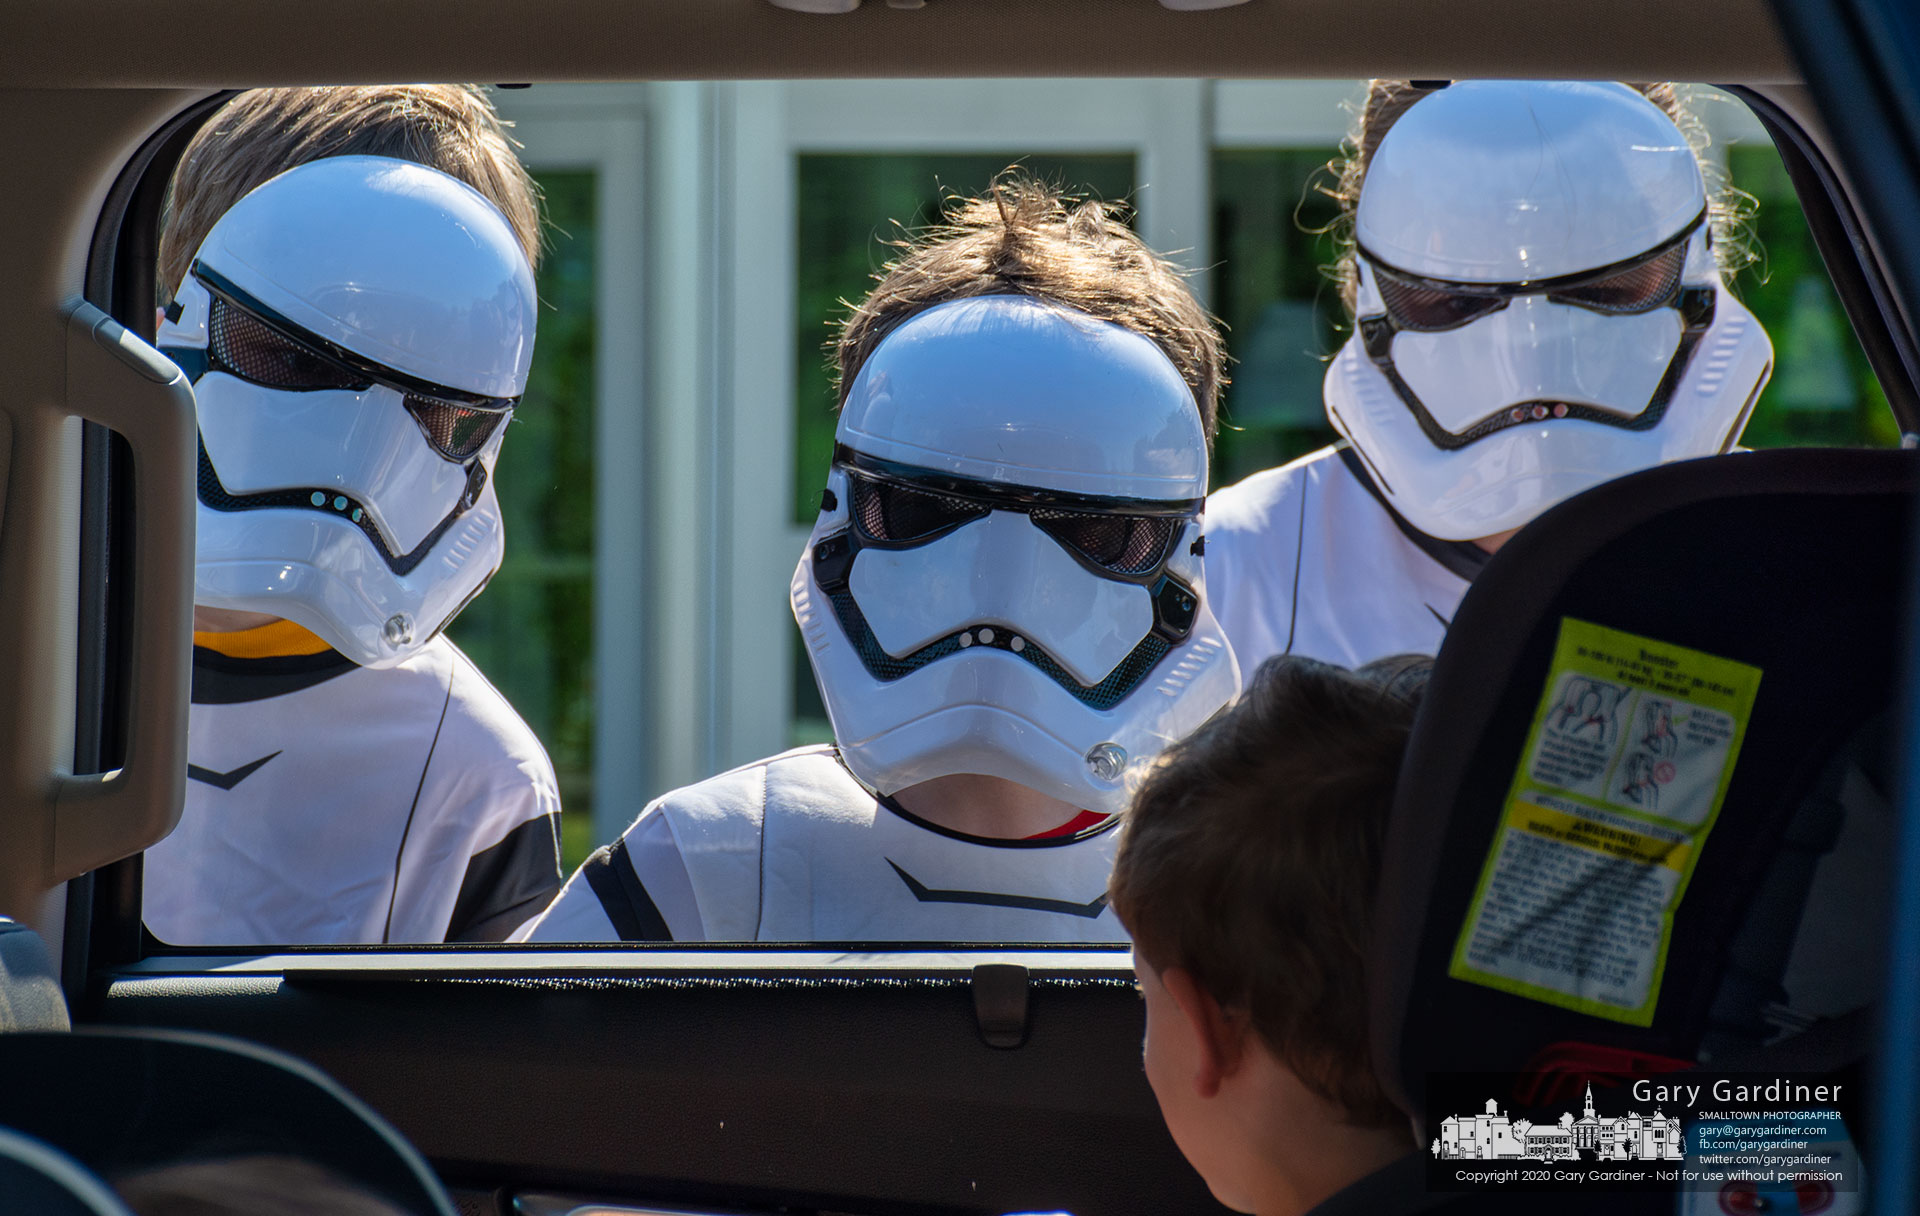 A trio of Stormtroopers asks a youngster in a car seat if he has any droids in the car as he passes a checkpoint in front of the Westerville Community Center during a food drive e for W.A.R.M. My Final Photo for May 30, 2020.